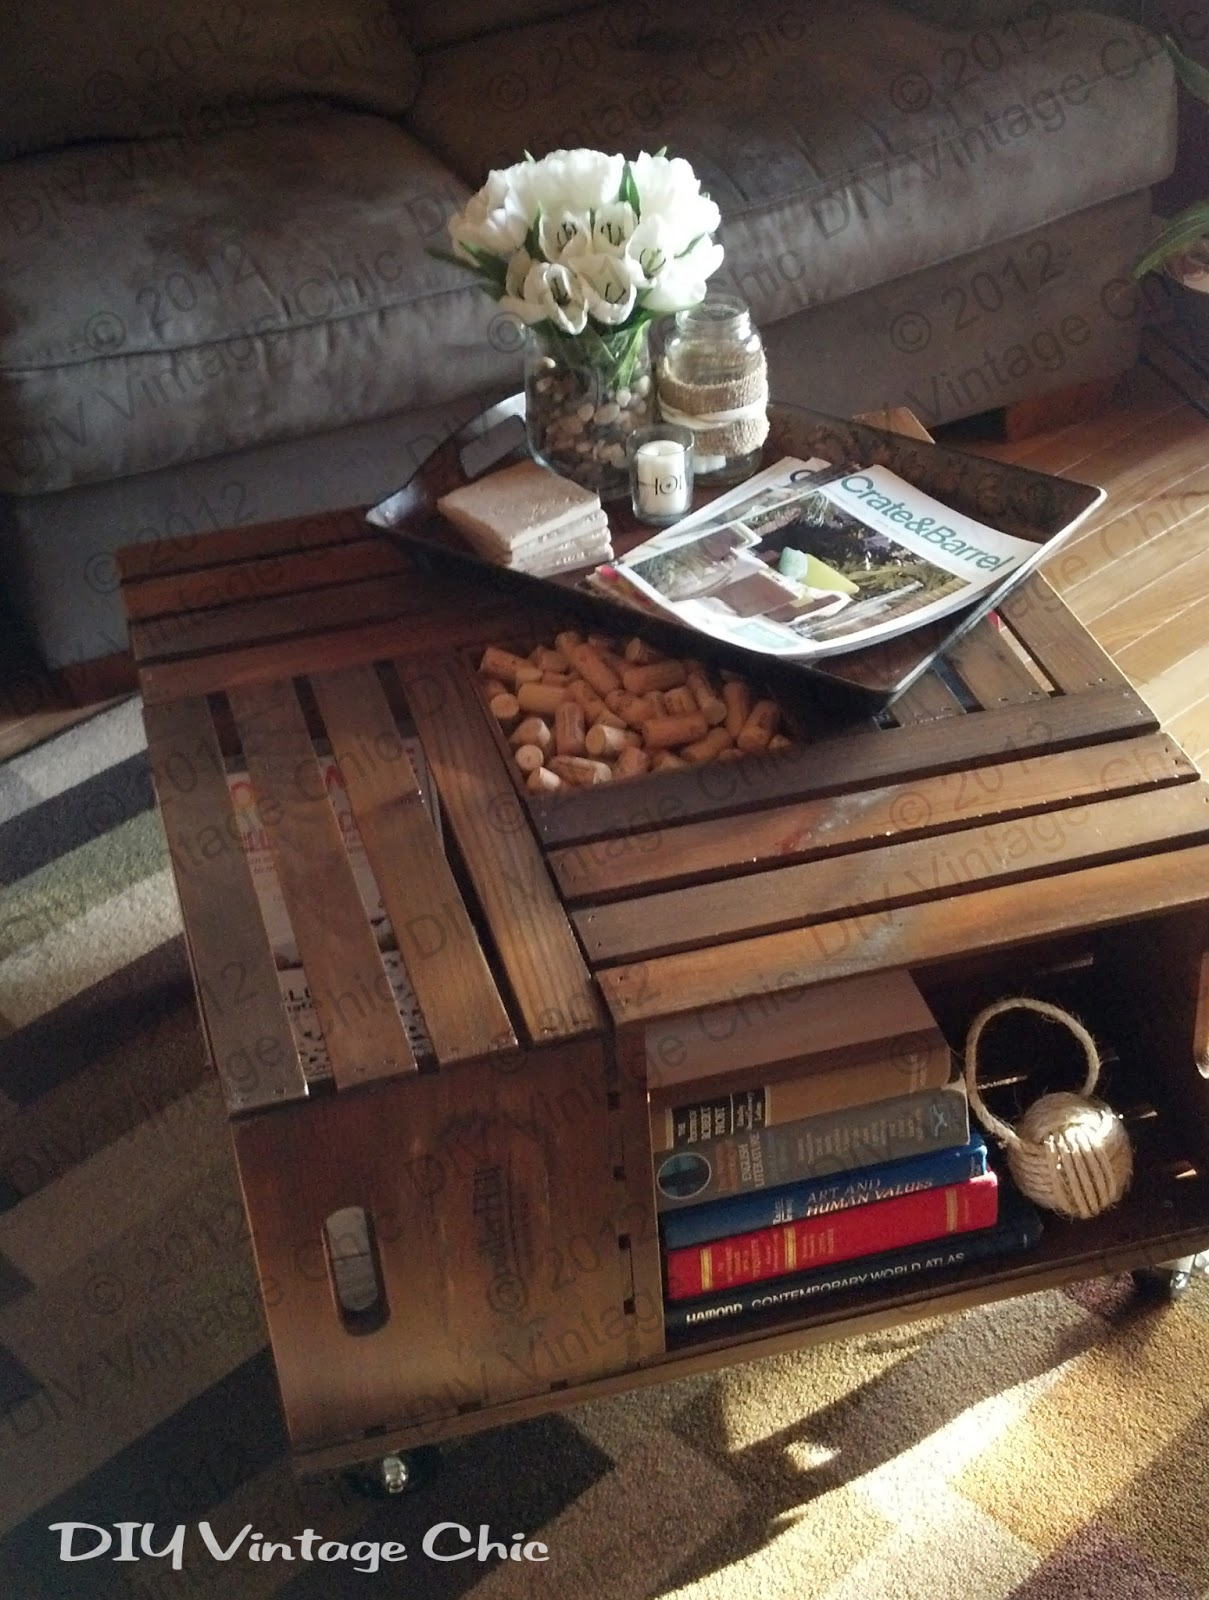 Diy vintage chic vintage wine crate coffee table a leg of our old coffee table is about to give out the reason why my kitchen table is where my laptop sits along with my printer usually partsmaterials geotapseo Choice Image